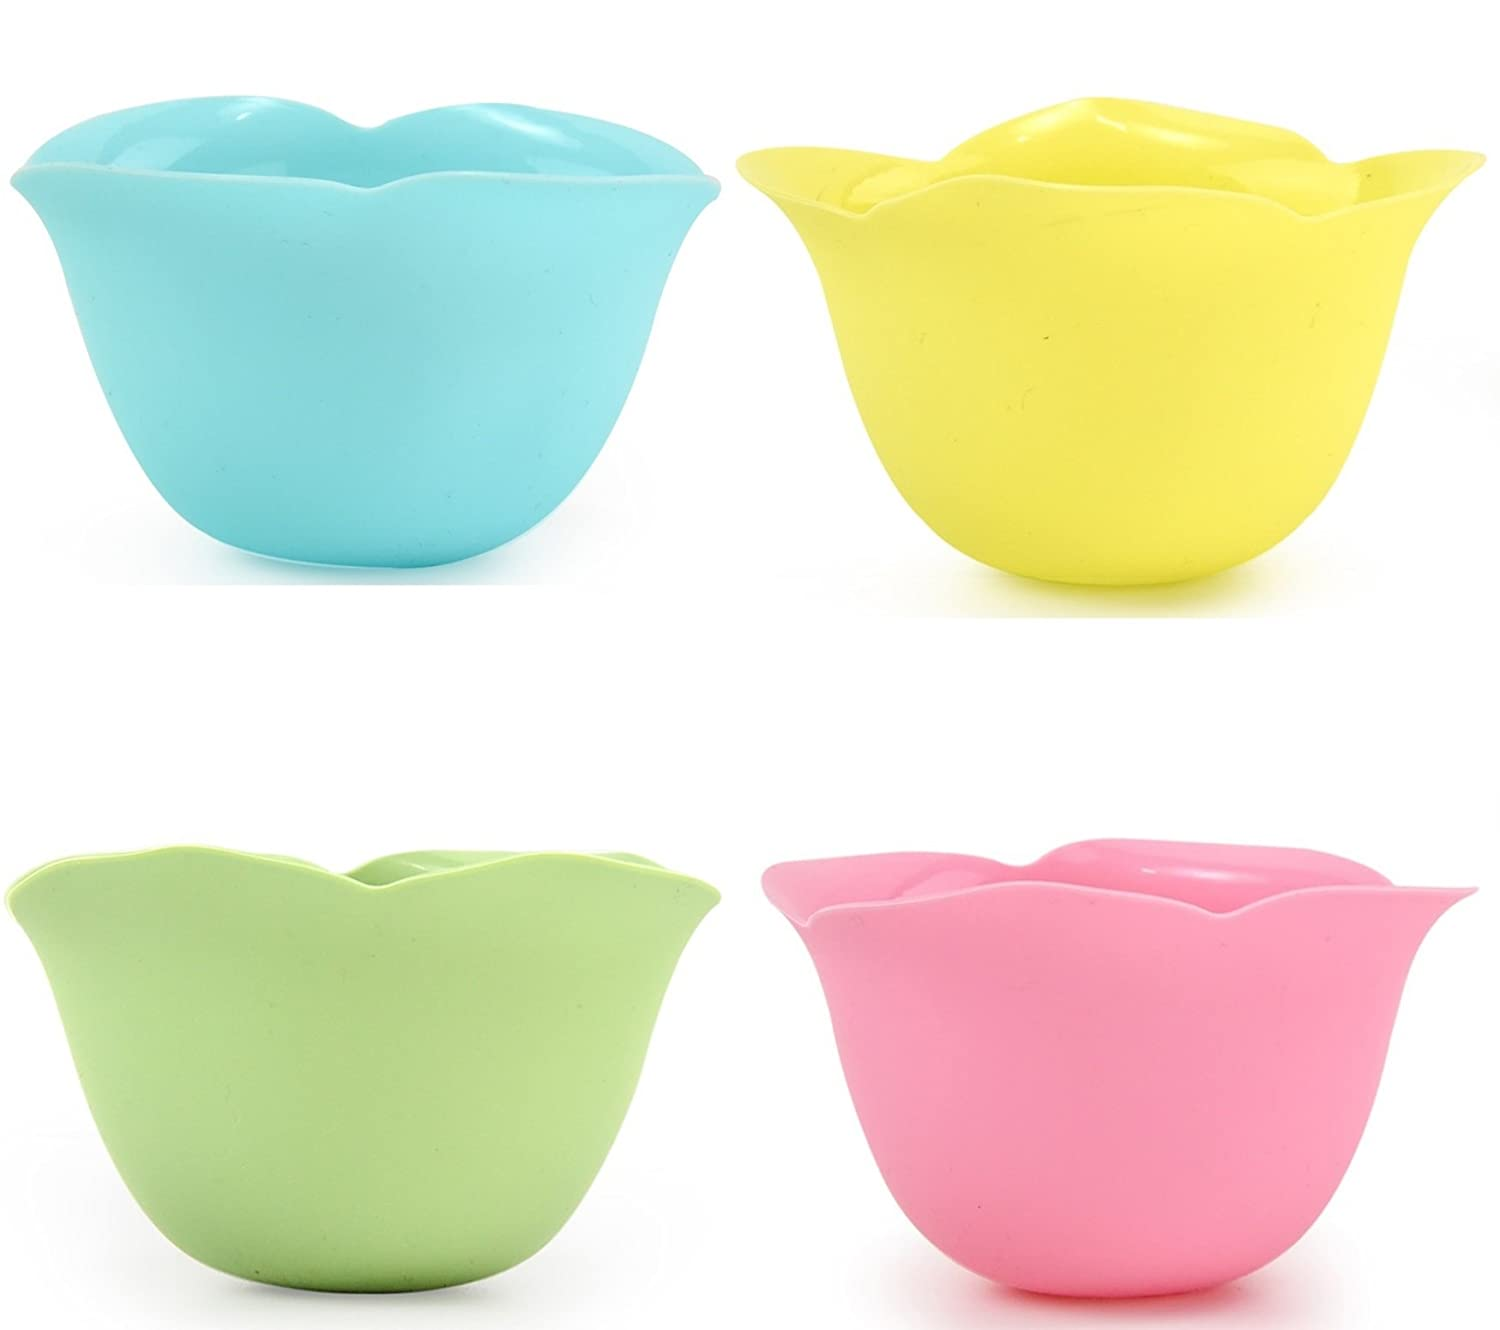 Perfect Poachers by Archer - Silicone Egg Poaching Cups - Stovetop or Microwave Egg Poacher - Dishwasher Safe Poached Egg Maker - Pack of 4 Nonstick Poached Eggs Cups - Pastel Colors - BPA Free Archer Kitchenware